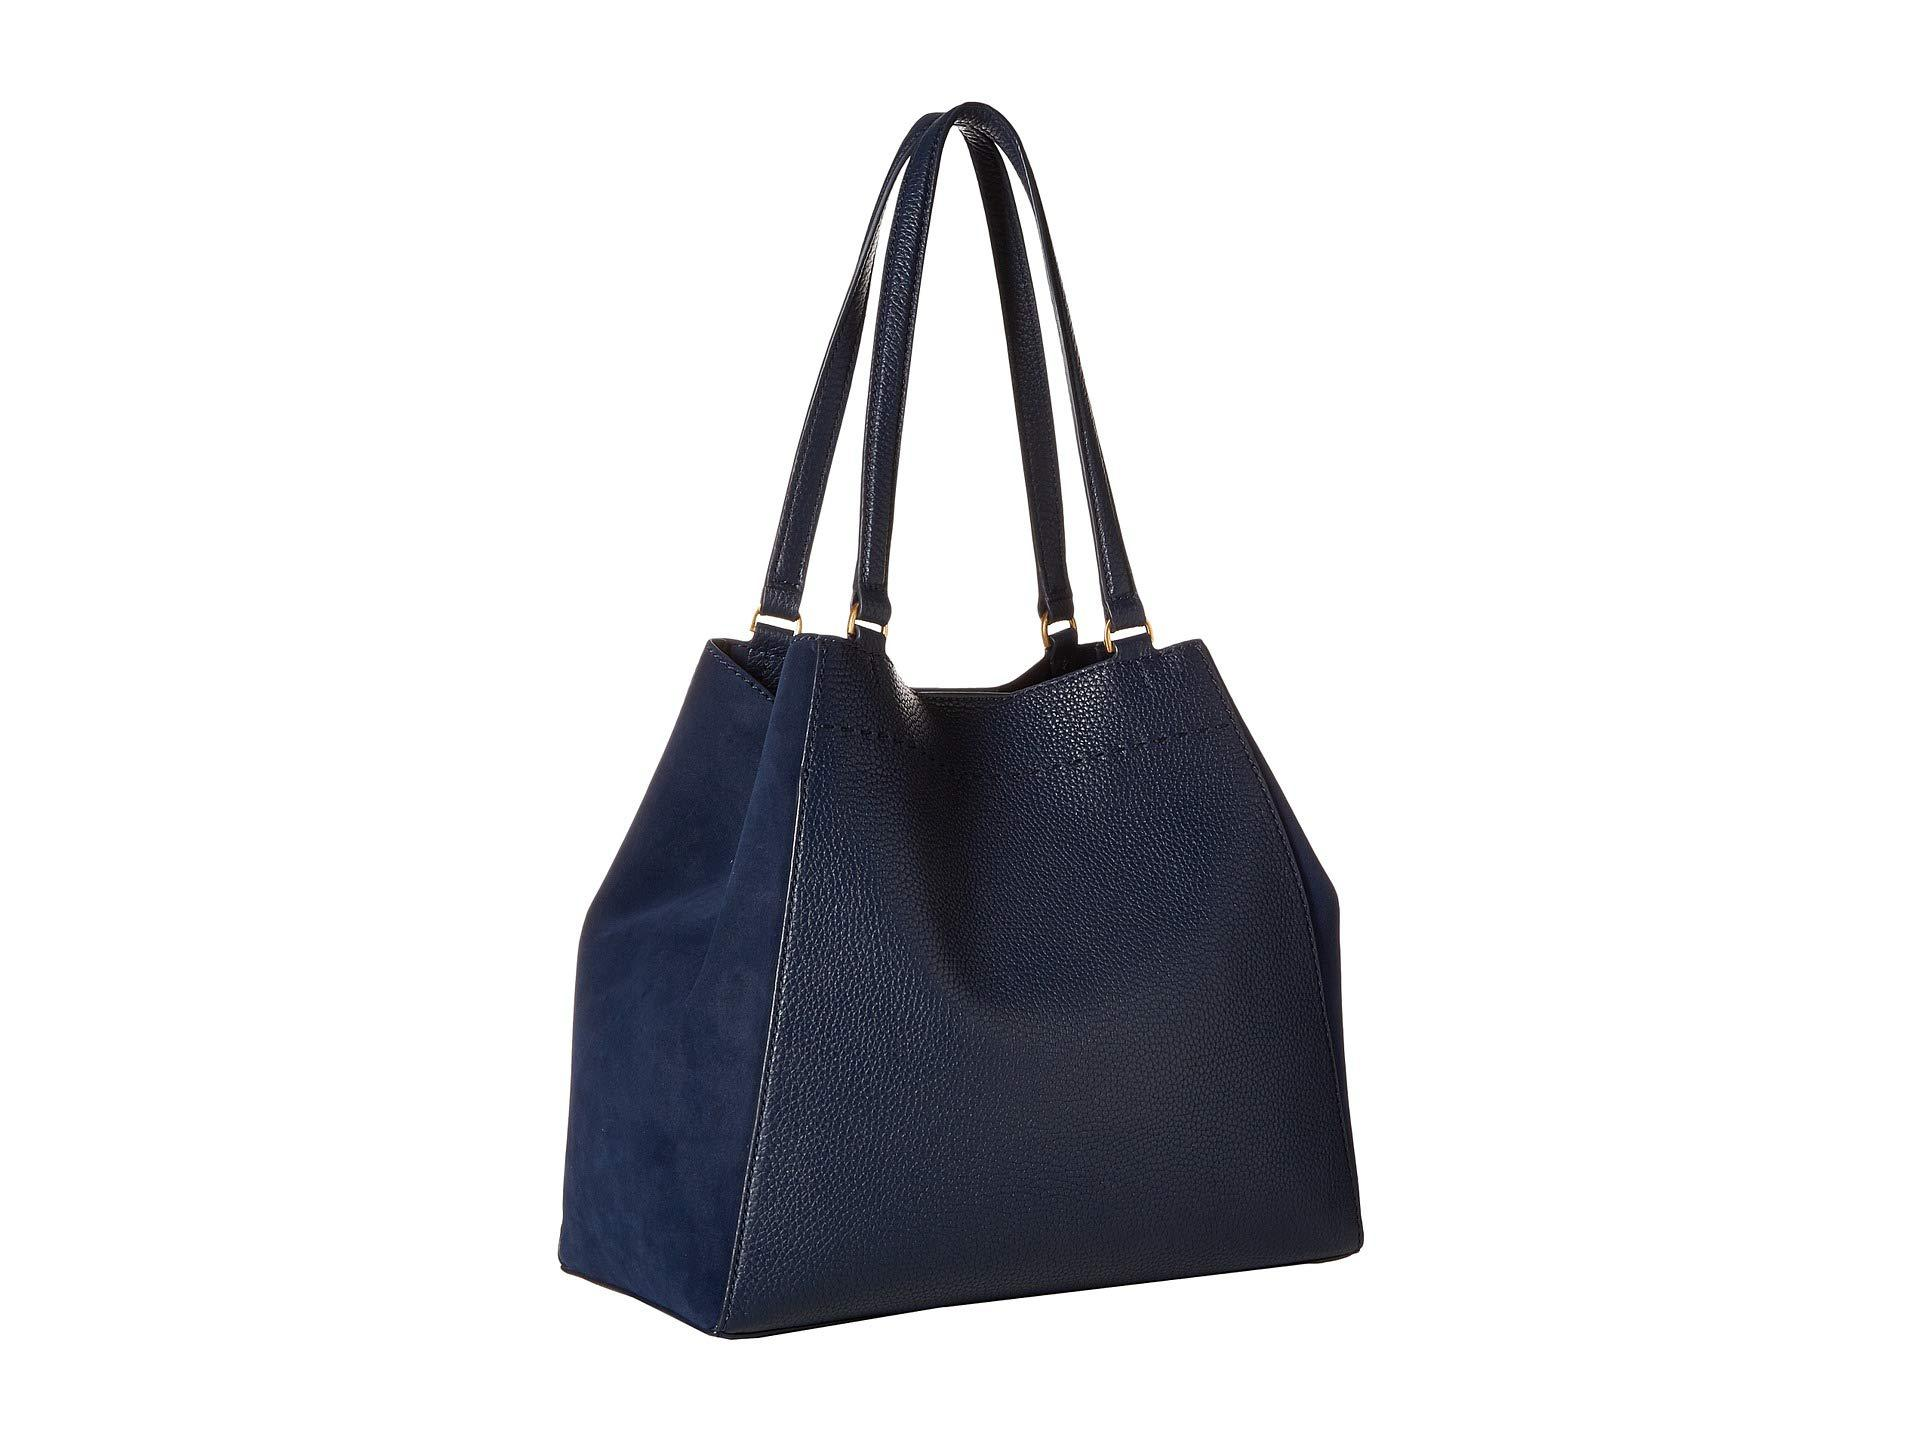 b4c106f8e3330a Lyst - Tory Burch Mcgraw Mixed Materials Carryall (royal Navy ...